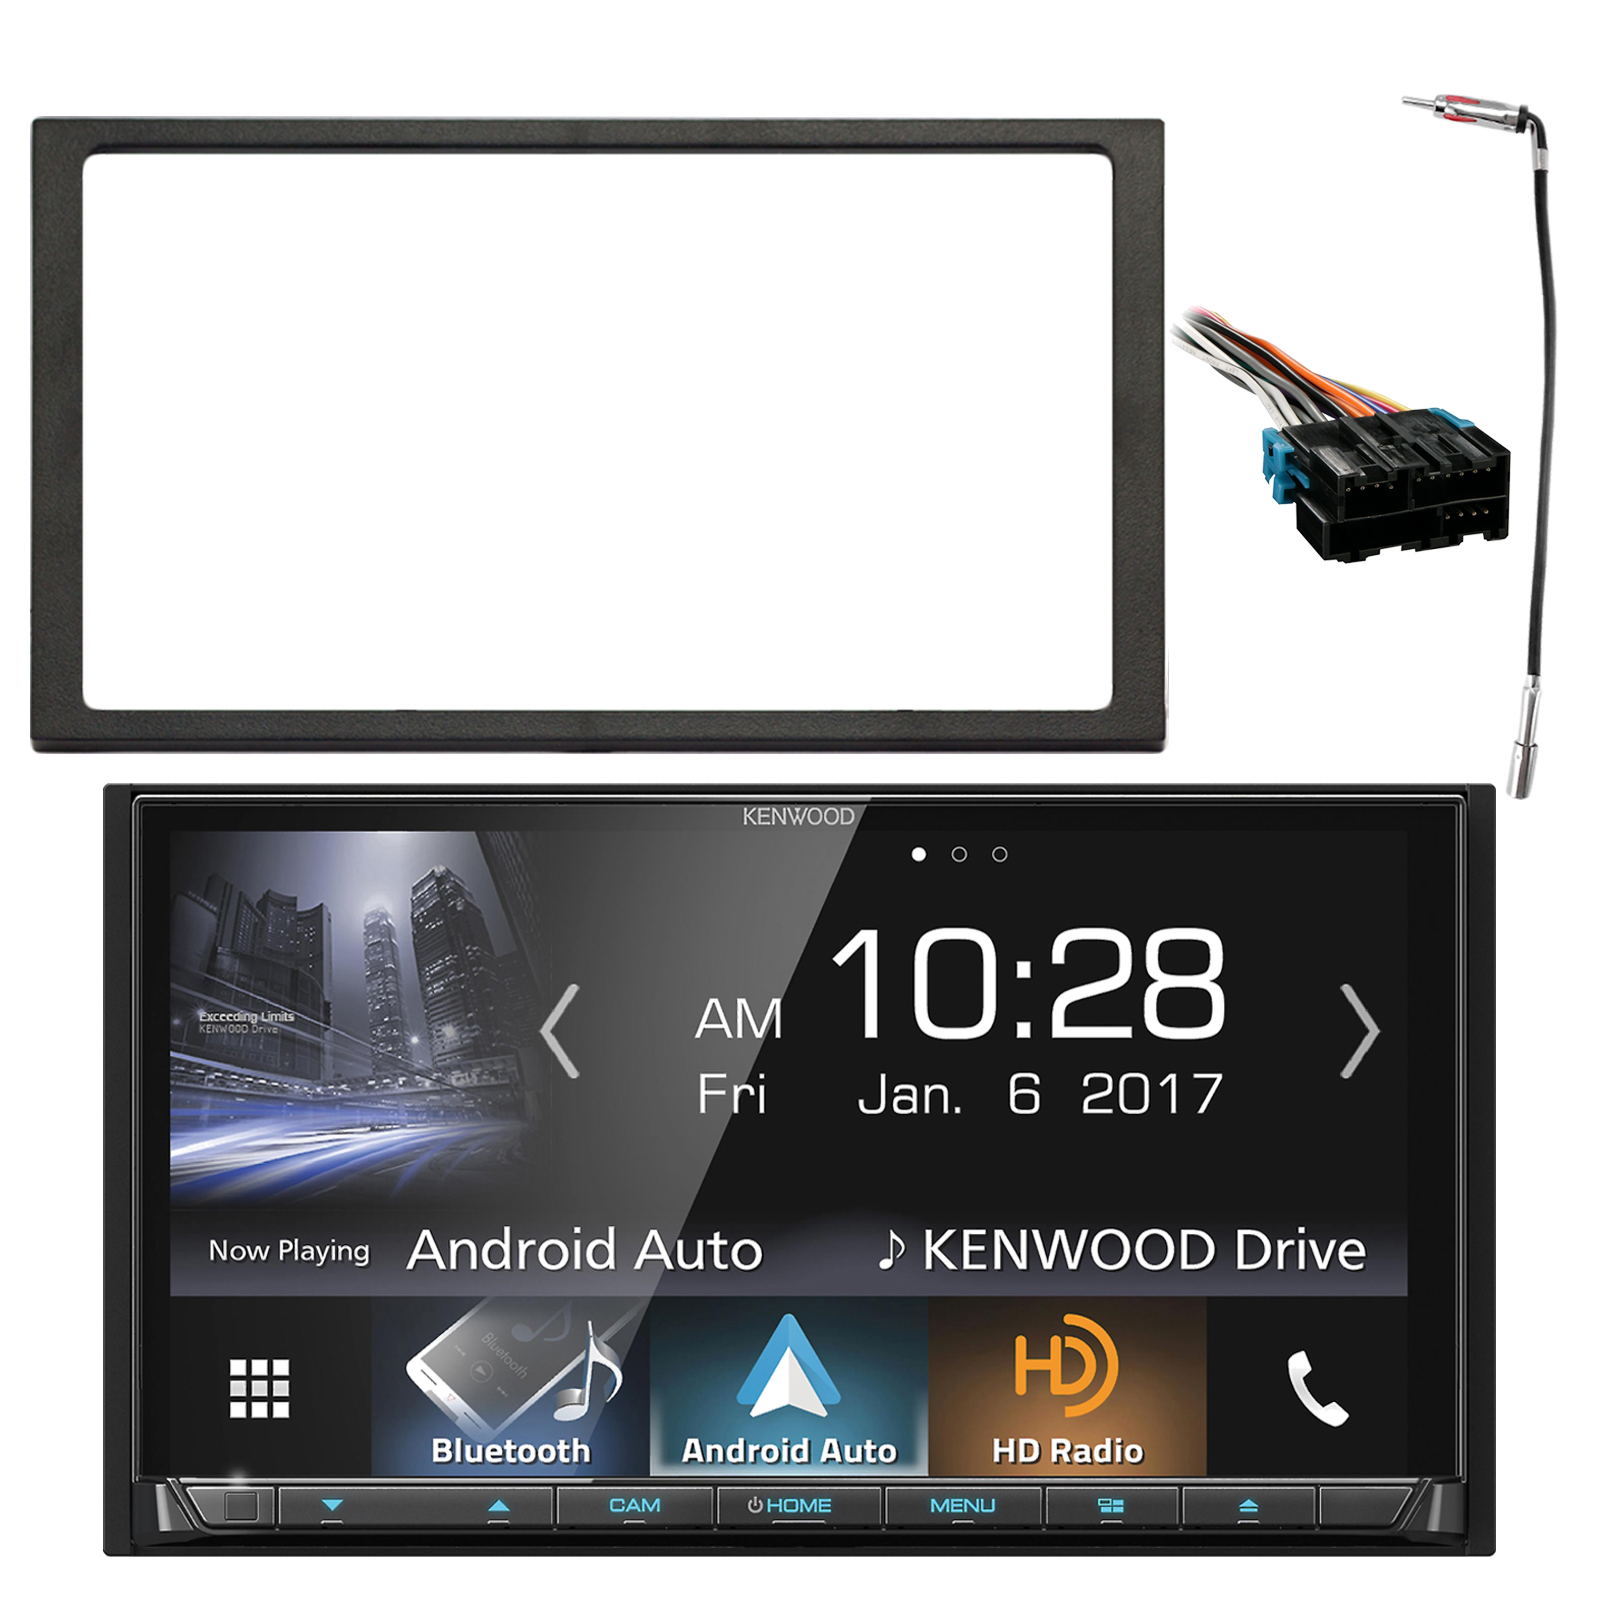 Kenwood 2-DIN In-Dash HD AM/FM Radio DVD Receiver W/ Capacitive Touch Panel, Enrock Double DIN Install Dash Kit, Metra Radio Wiring Harness, Enrock Antenna Adapter (Select 1994-2005 Vehicles)